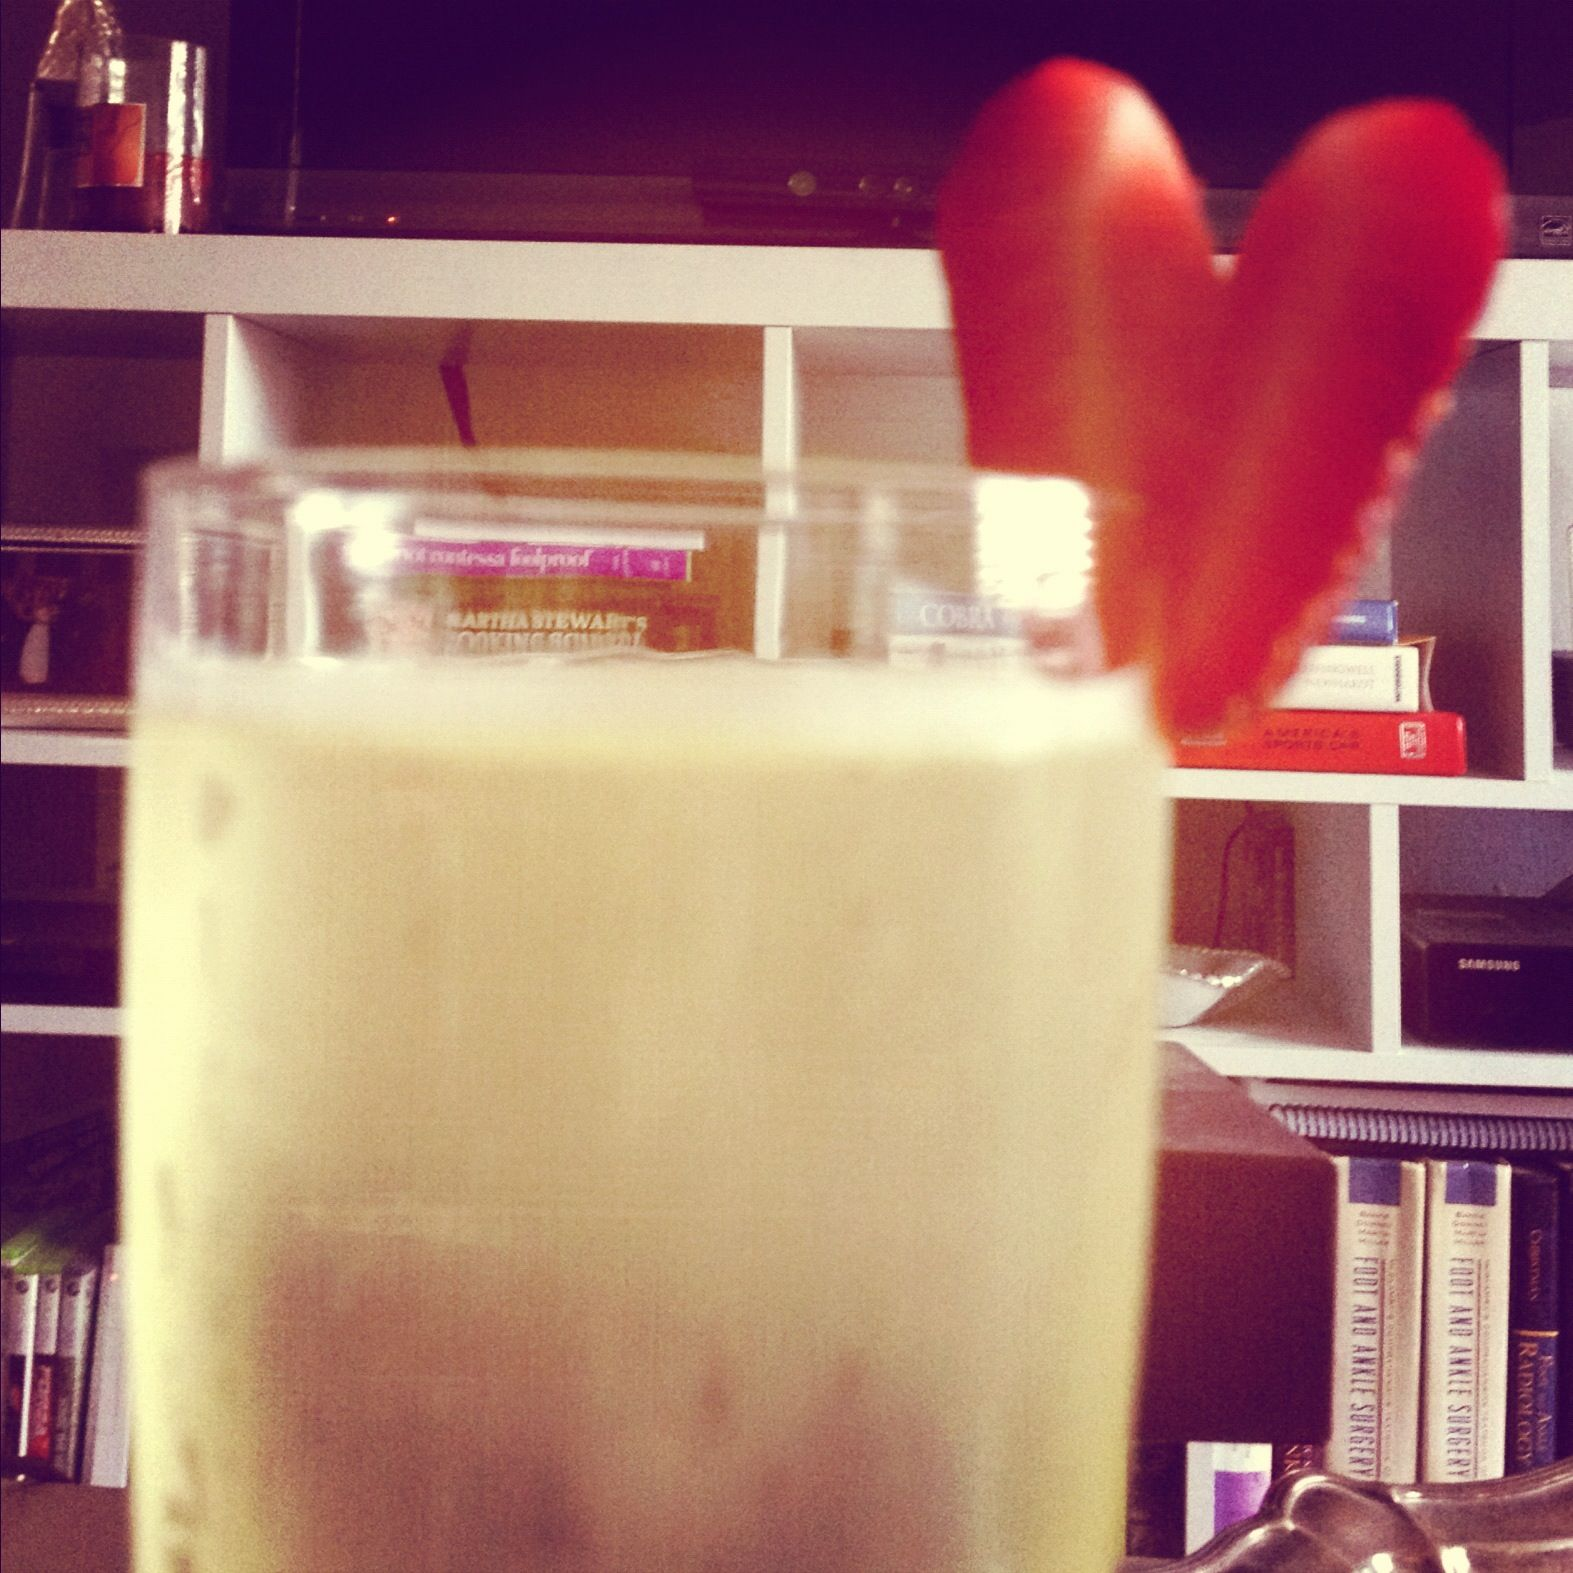 Sweetheart Champagne. Happy Valentine's Day!